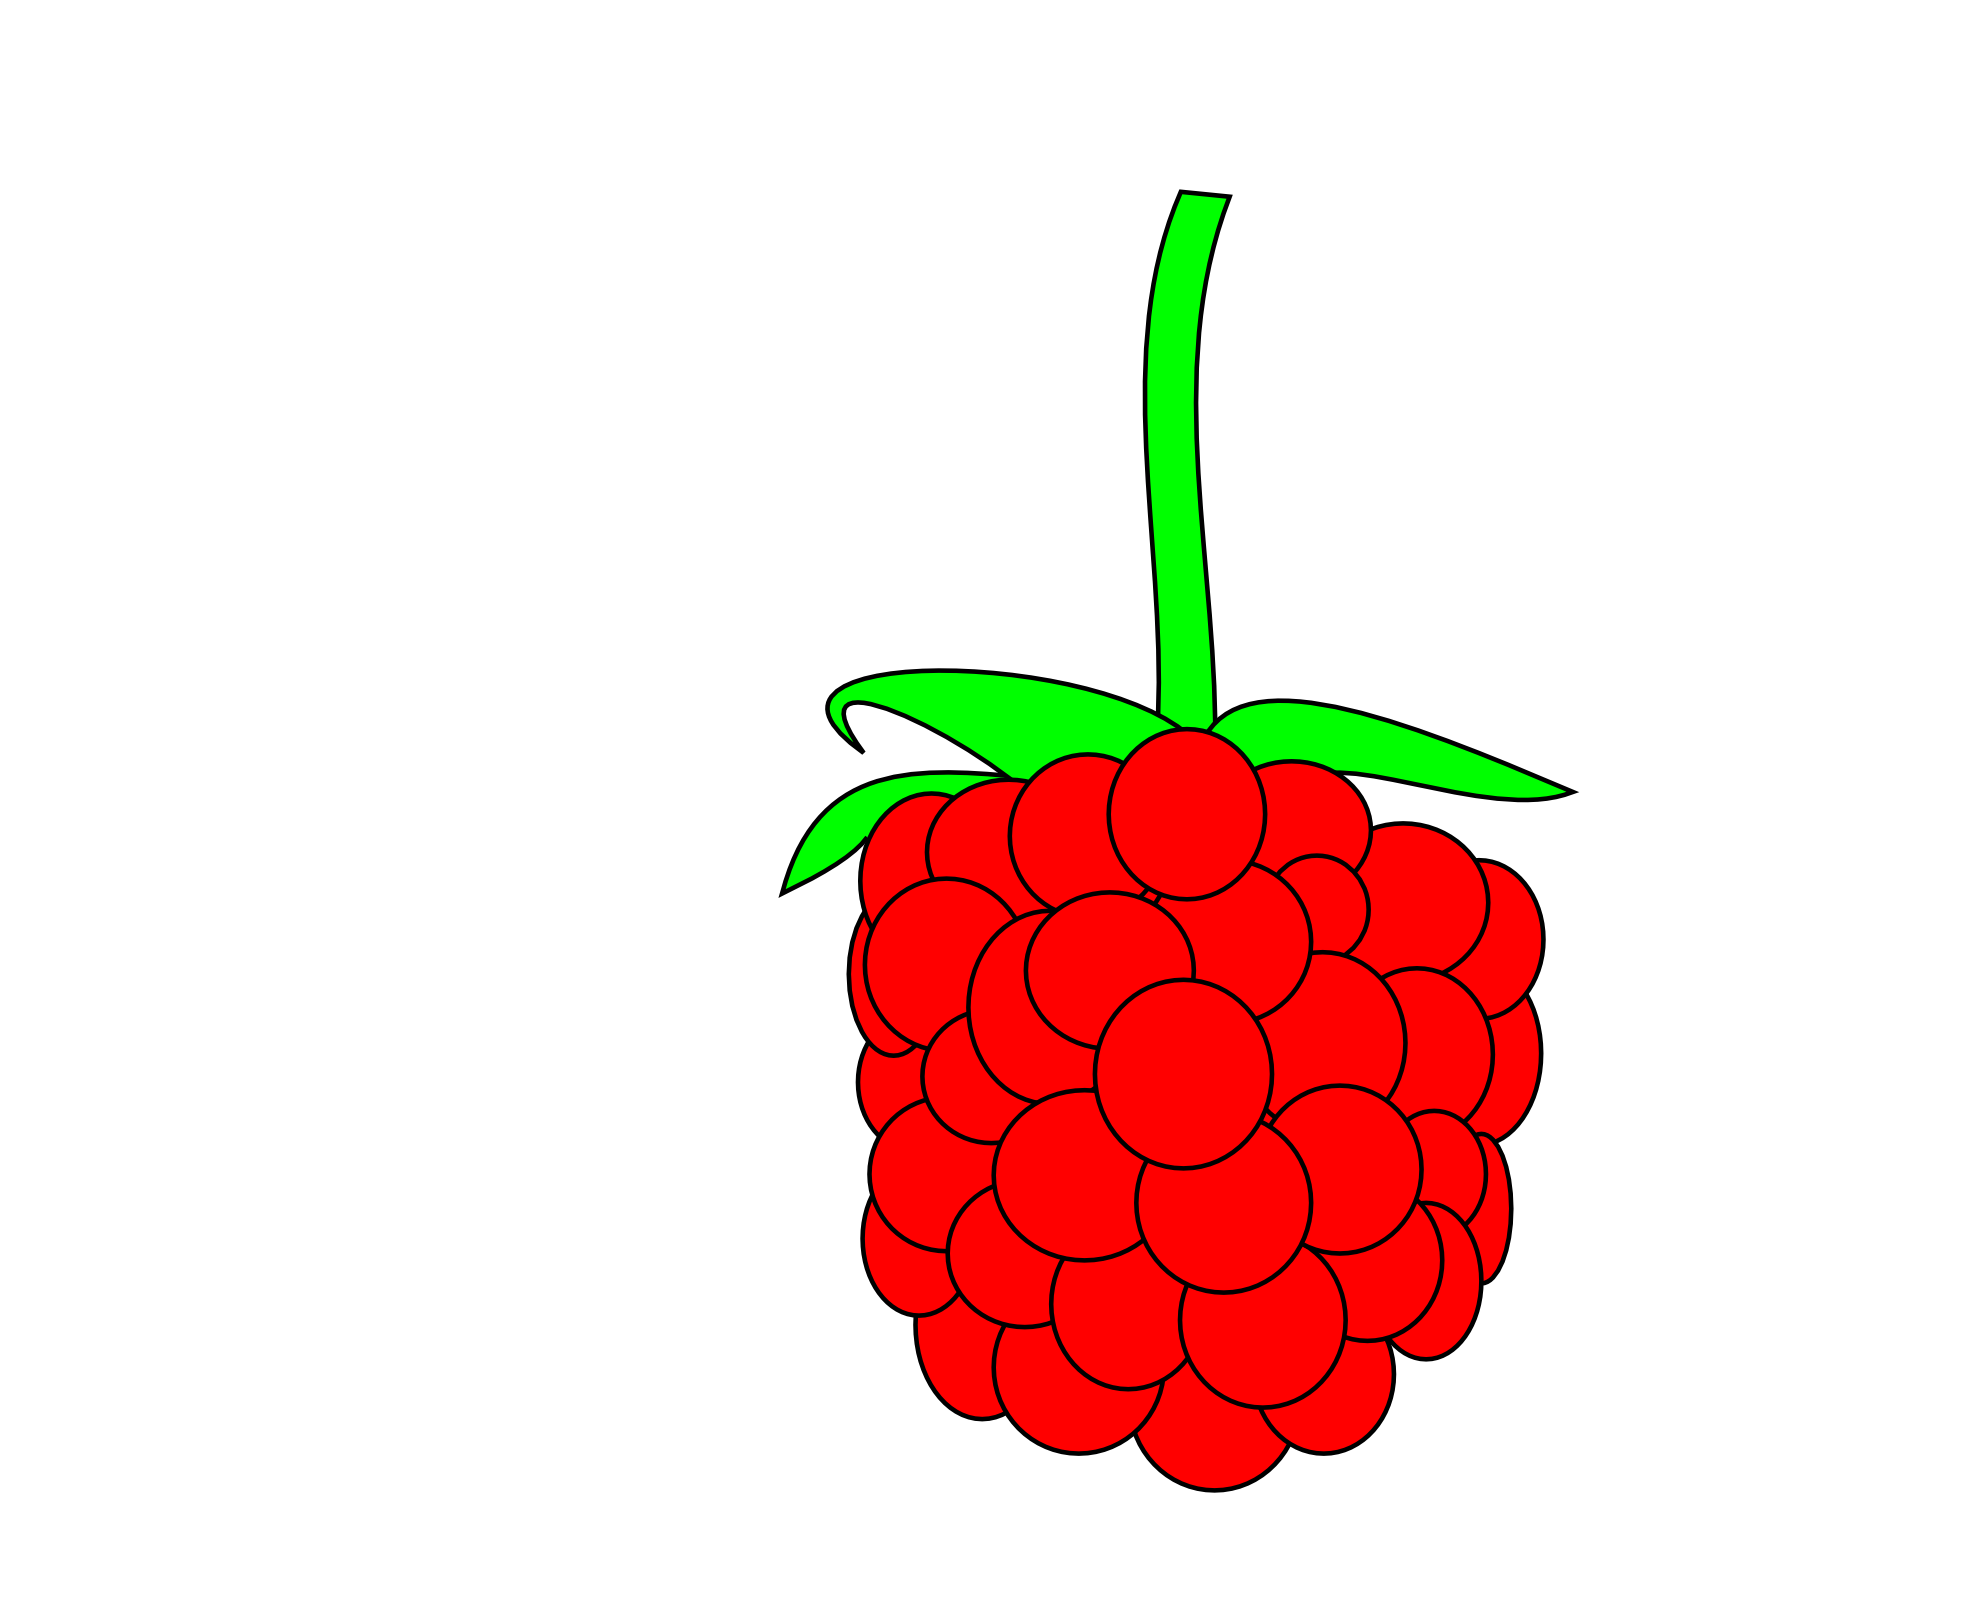 clipart free Raspberry free on dumielauxepices. Berry clipart